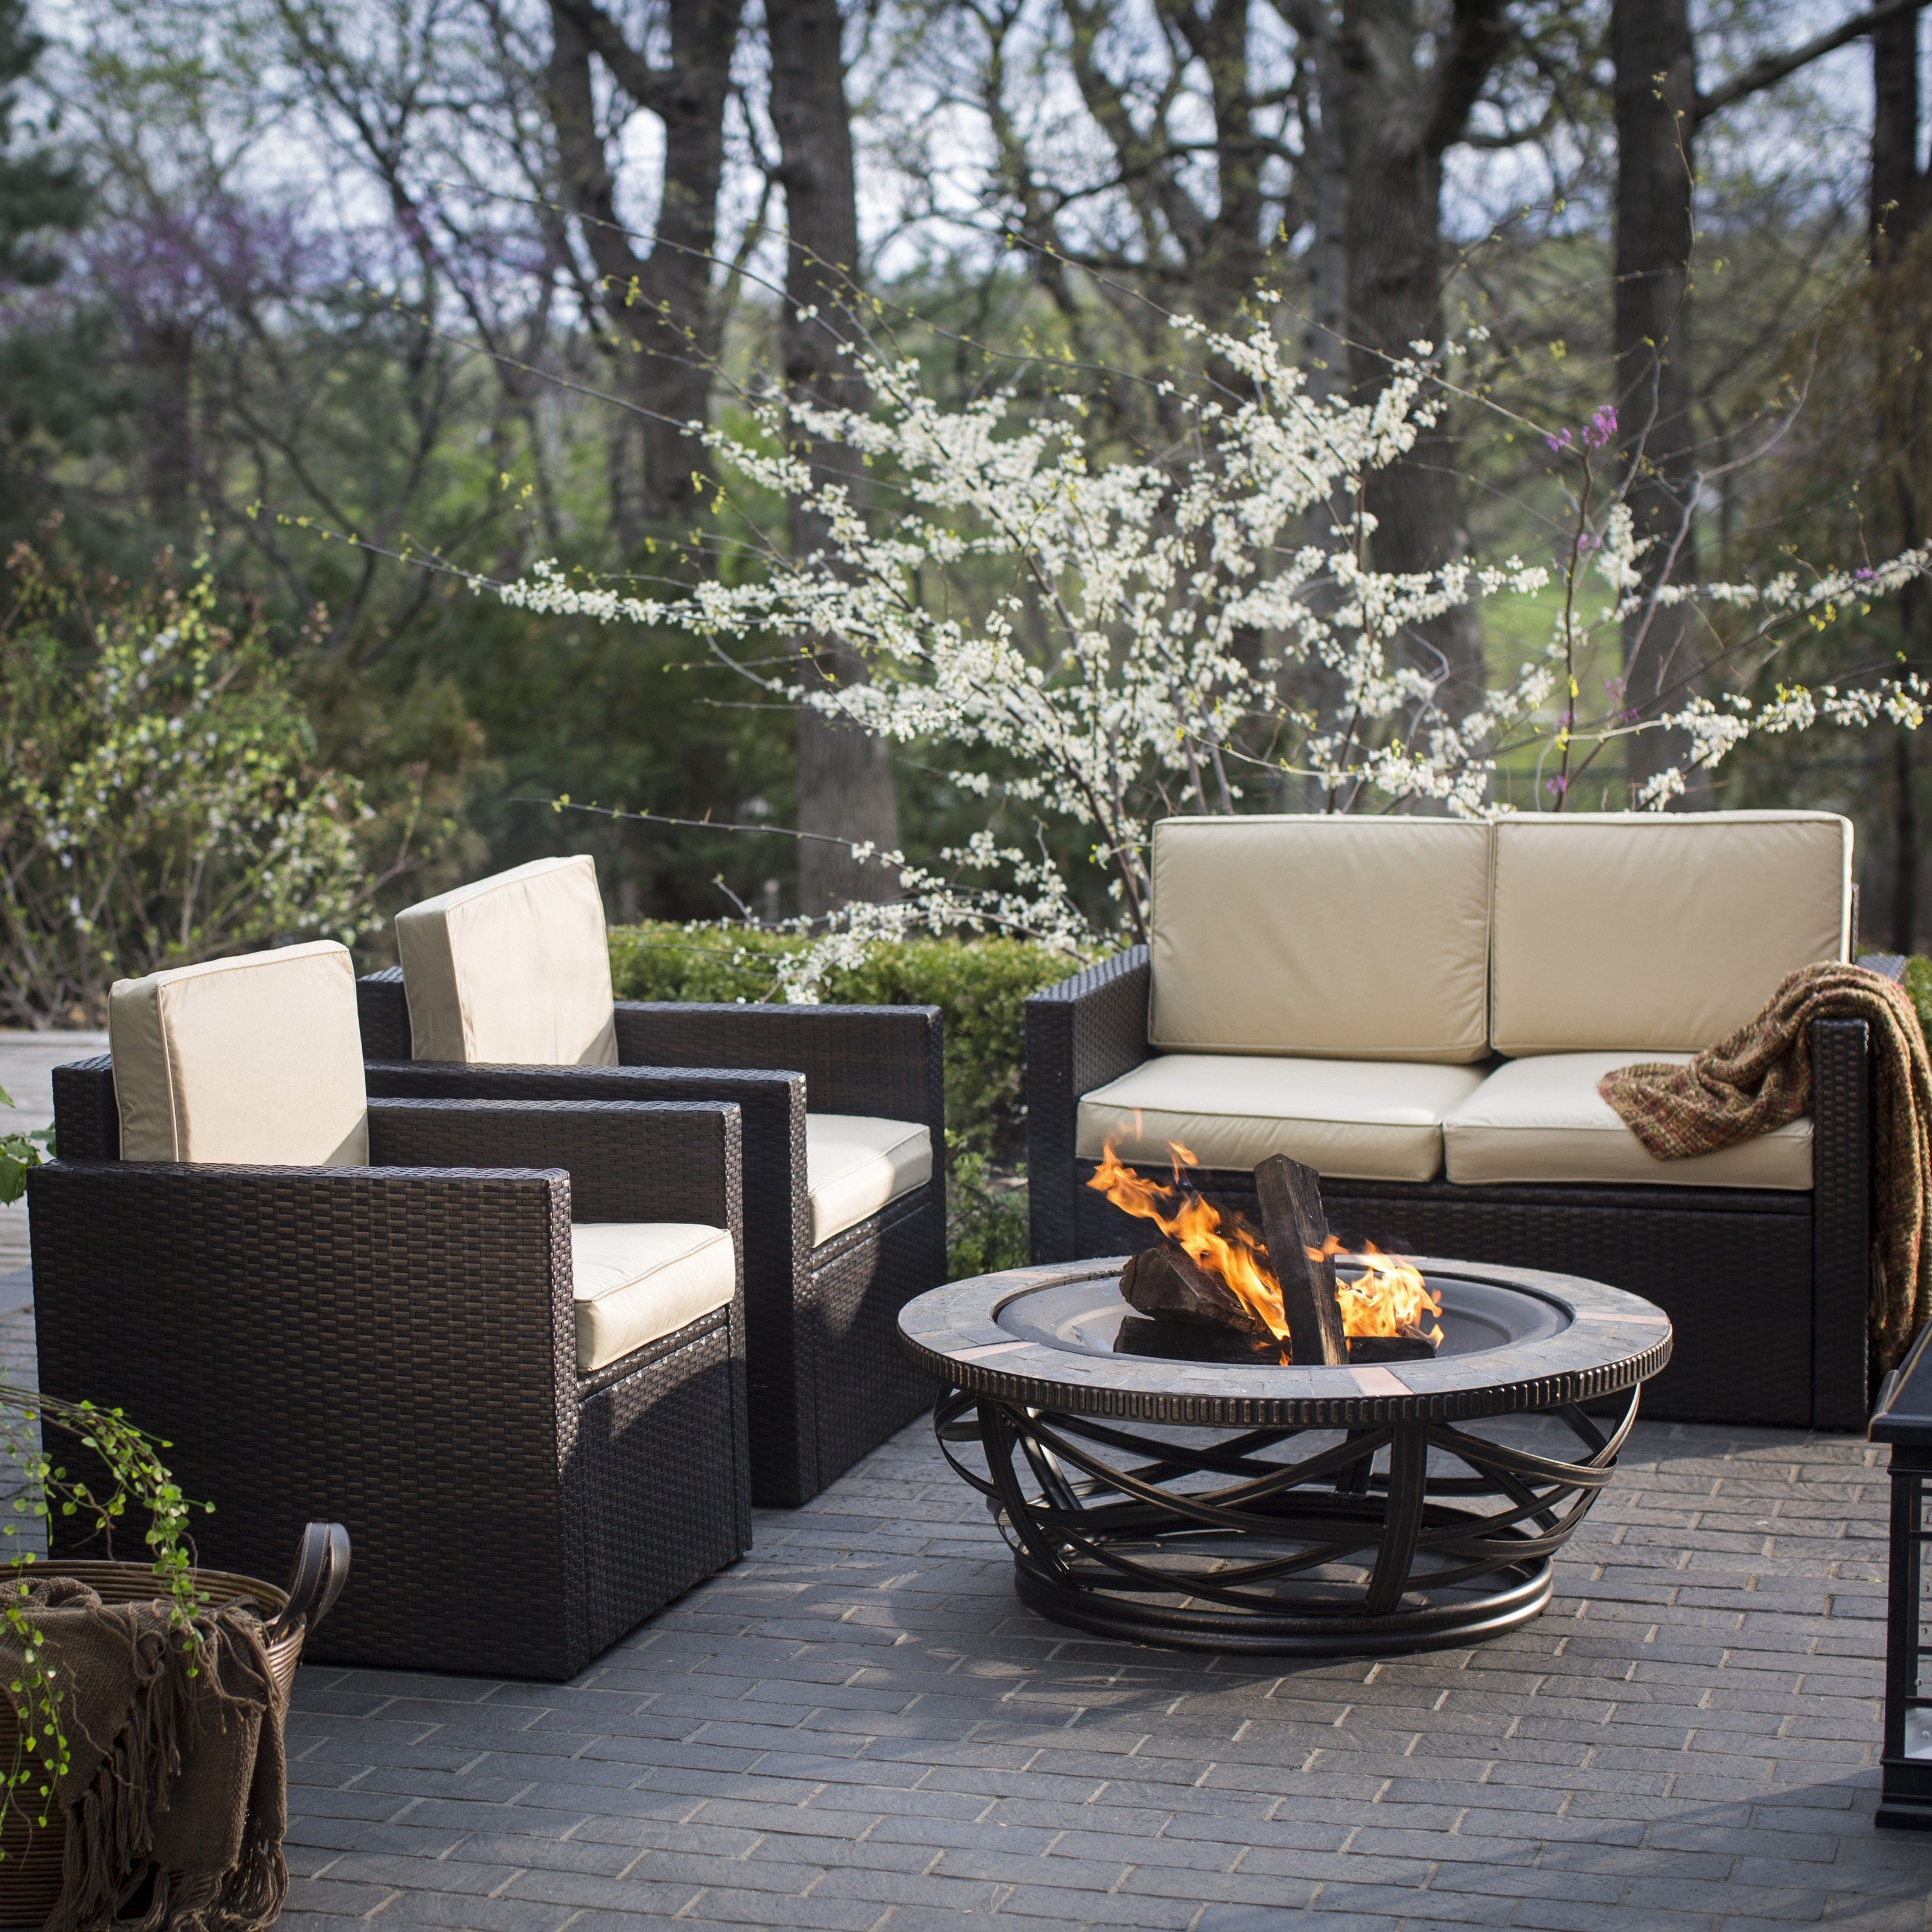 Costway 4 Pc Patio Rattan Wicker Chair Sofa Table Set Outdoor Garden Inside Well Known Walmart Patio Furniture Conversation Sets (View 8 of 15)